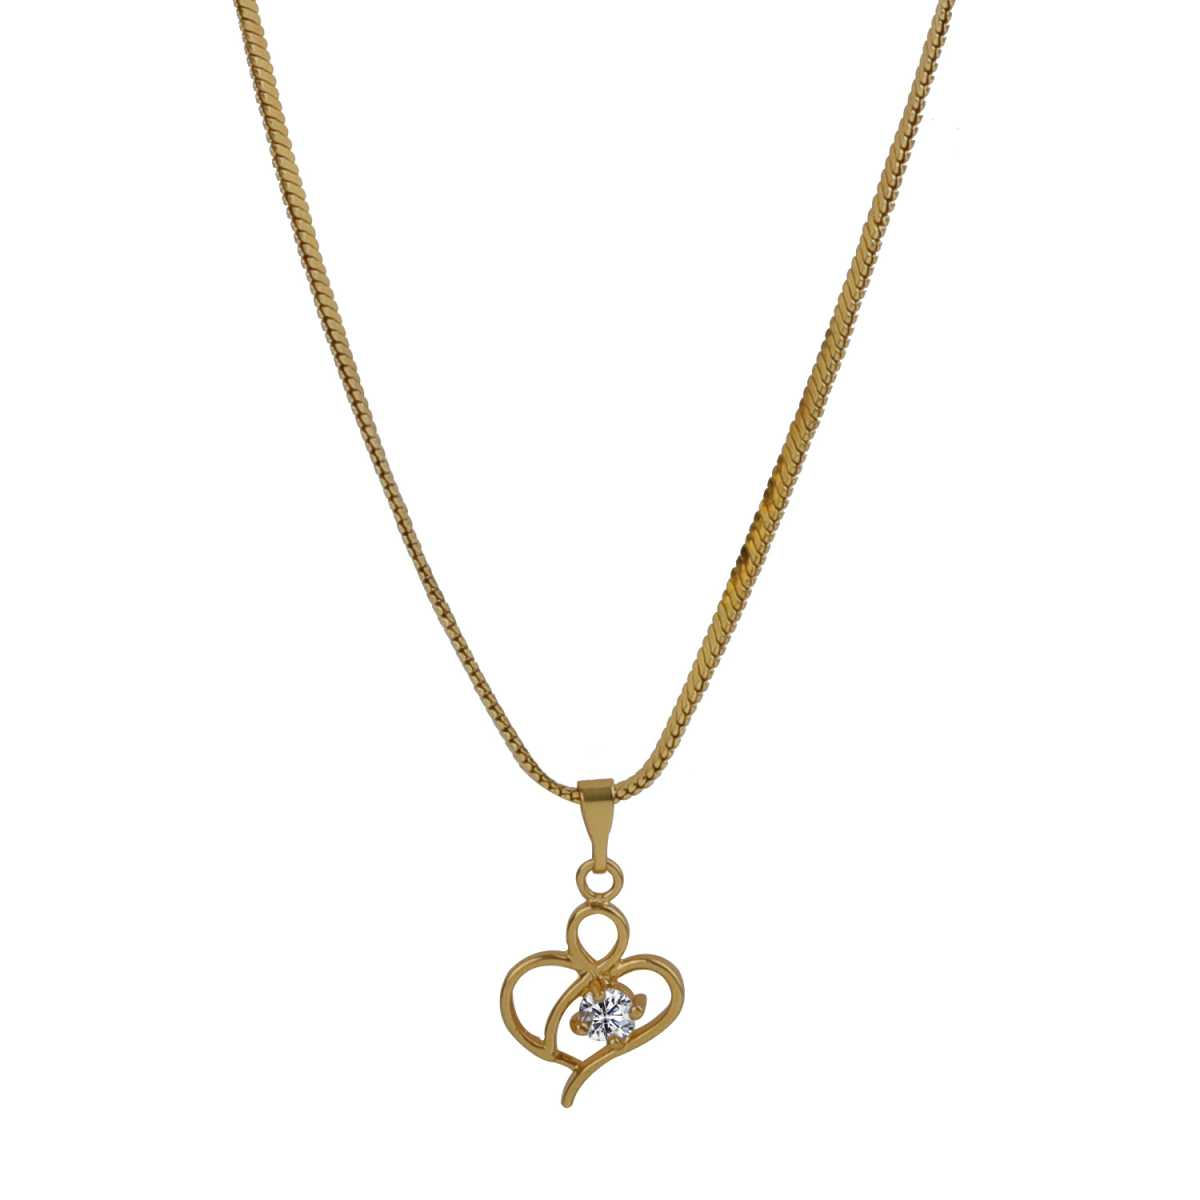 Spunky Gold Heart Pendent Neckless Of 12 Inch Chain Pretty Look For Girls And Women Jewellery